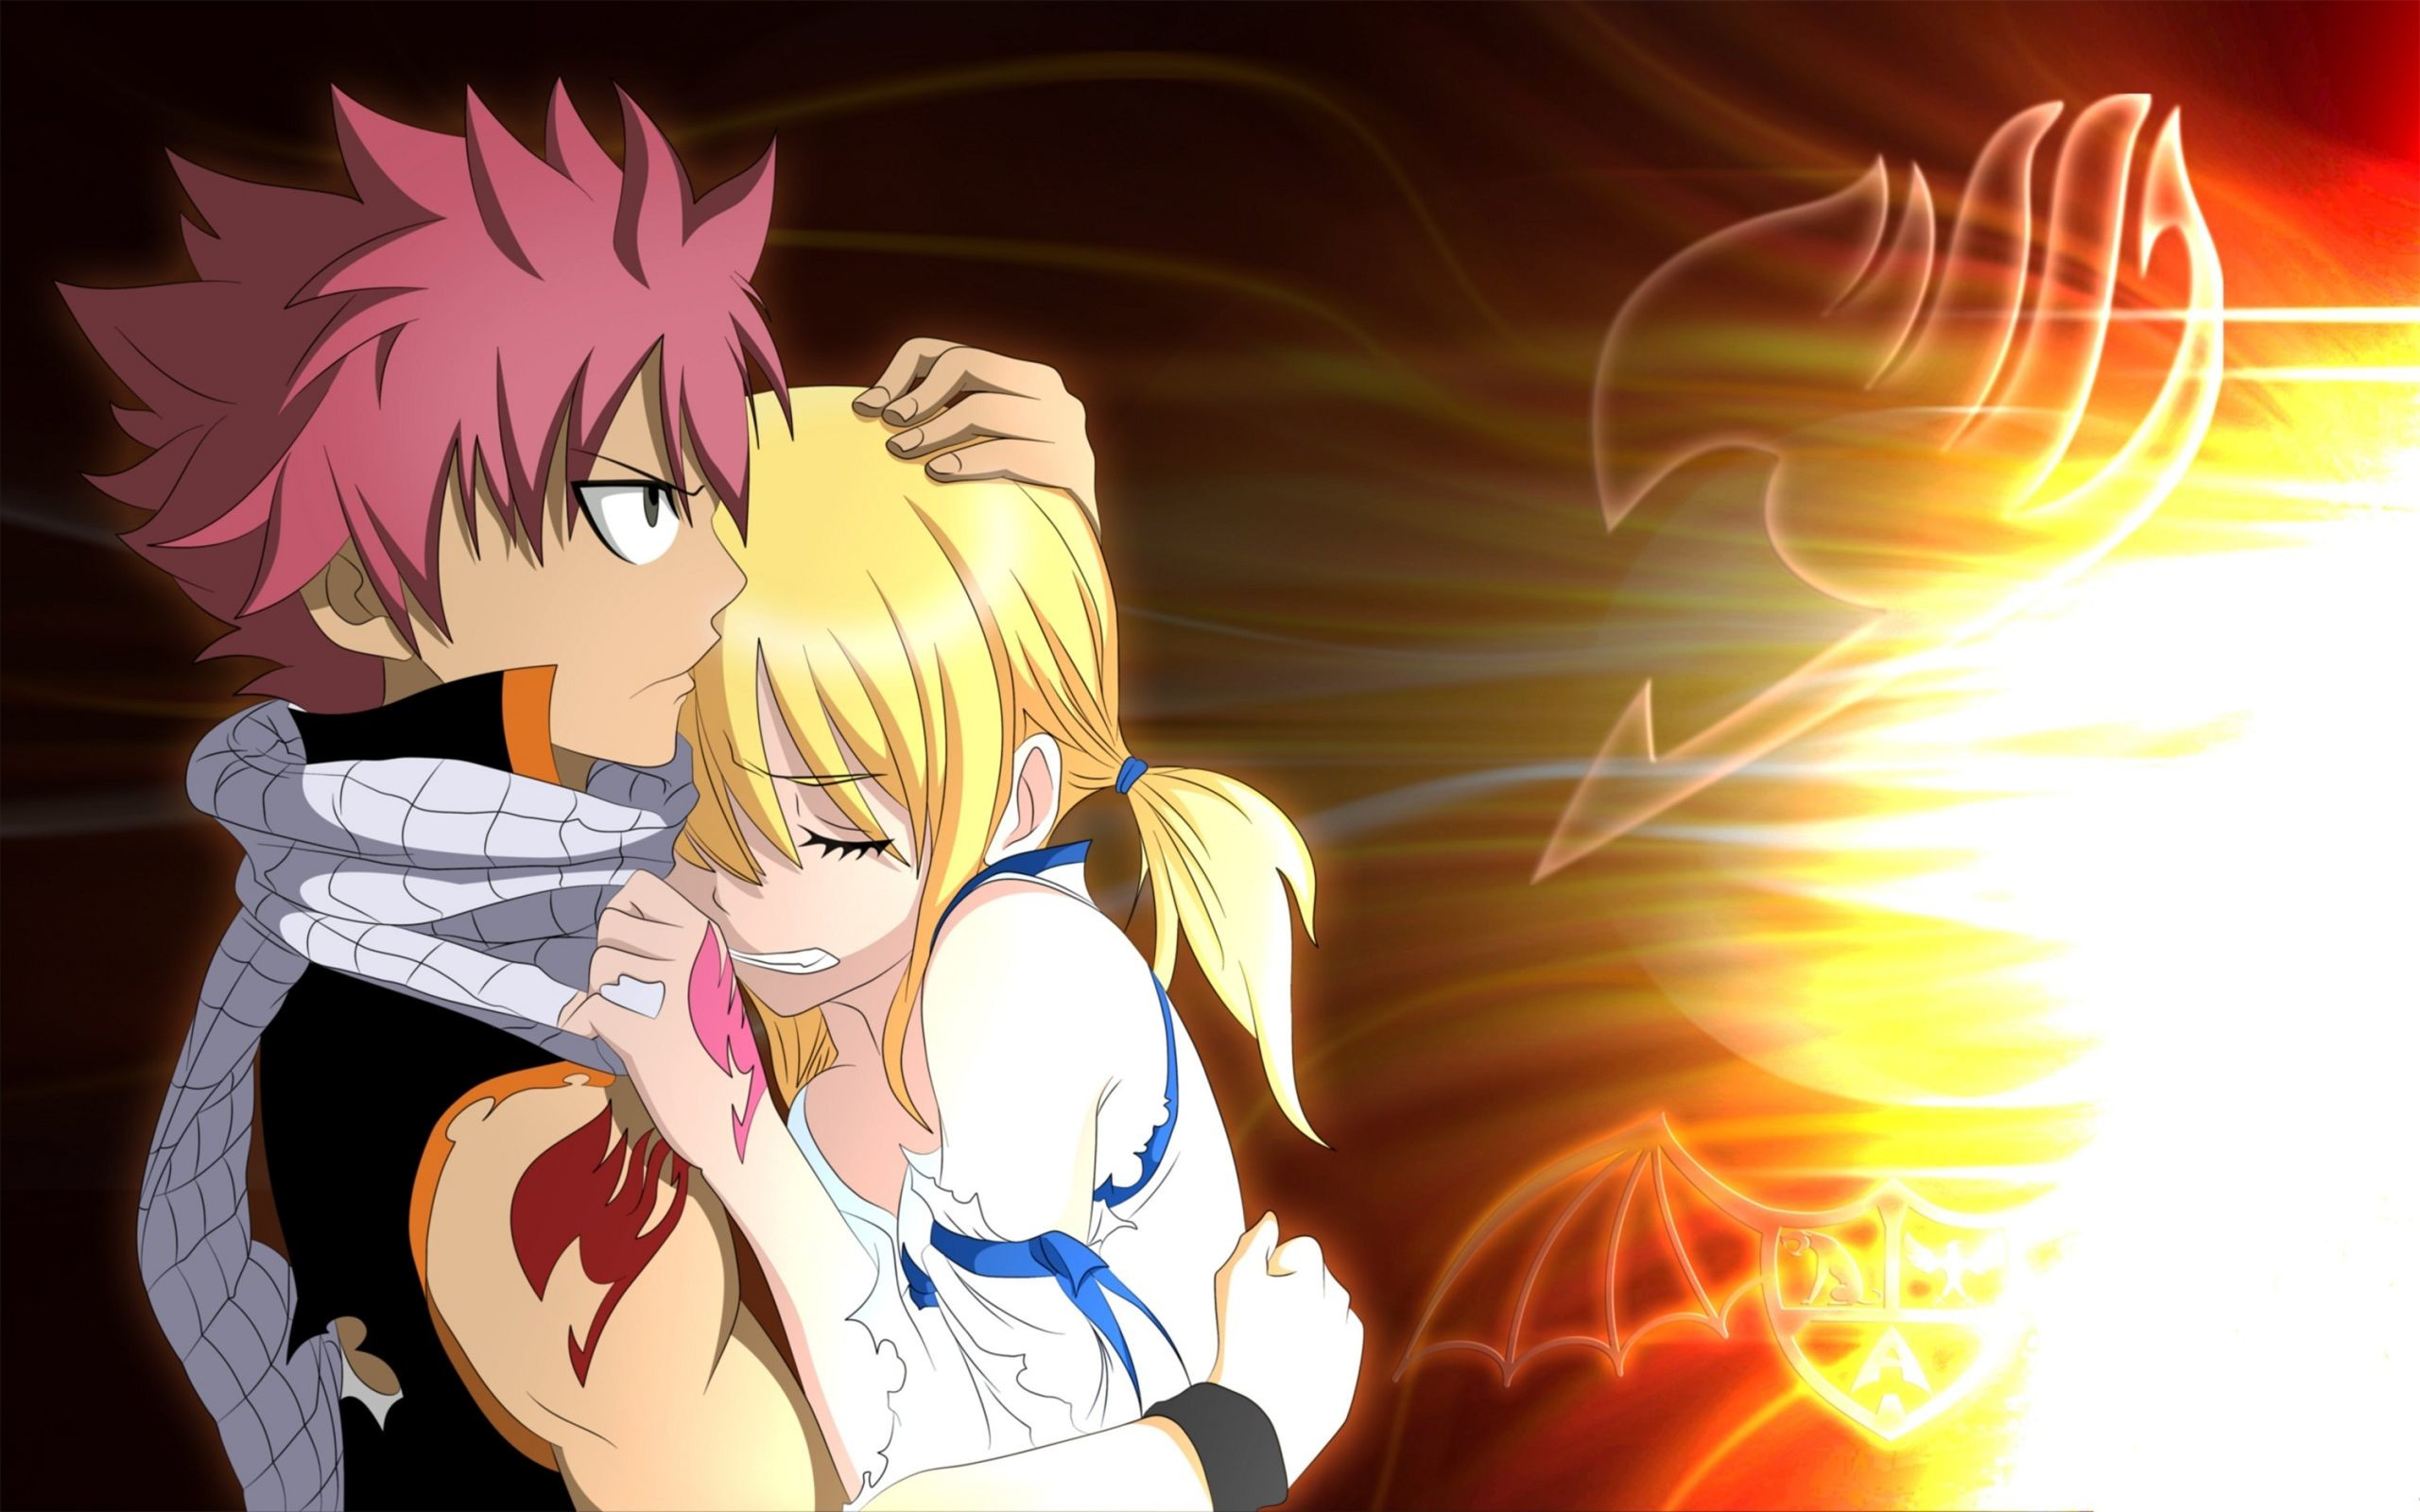 2560x1600 Romantic-Anime-Fairy-Tail-Wallpapers